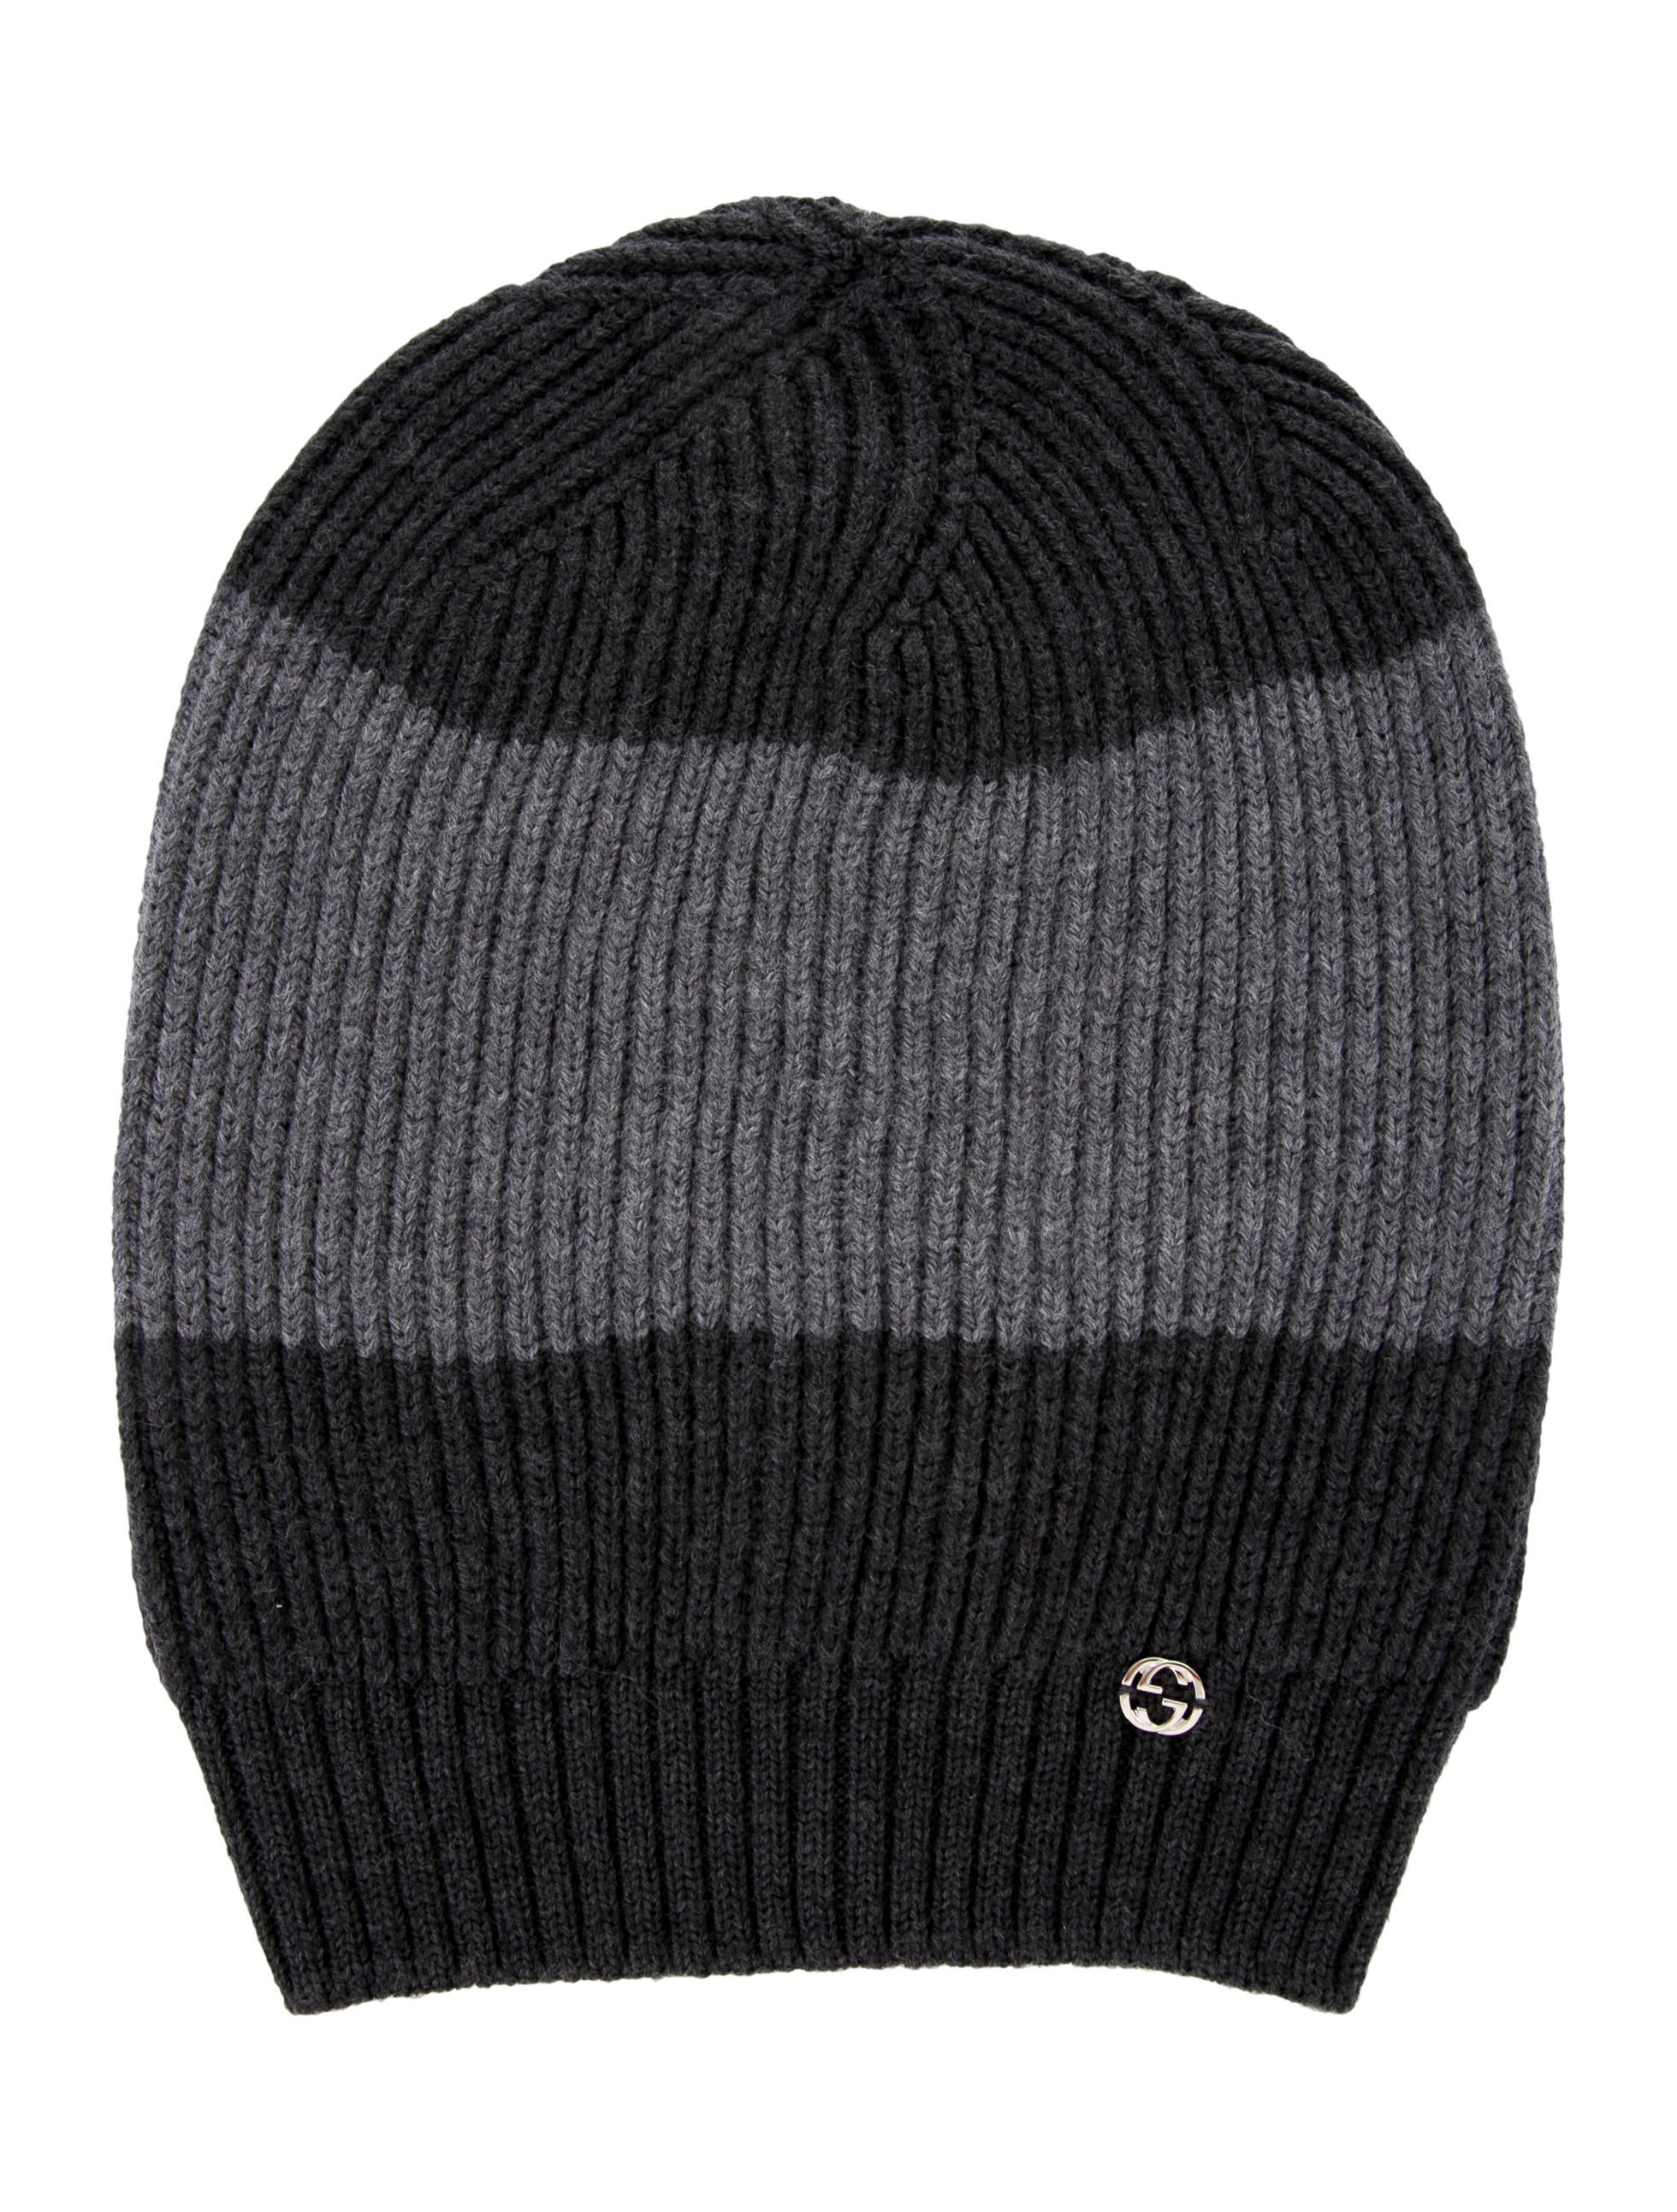 Gucci Wool GG Beanie w  Tags - Accessories - GUC171223  b02d5472cb3